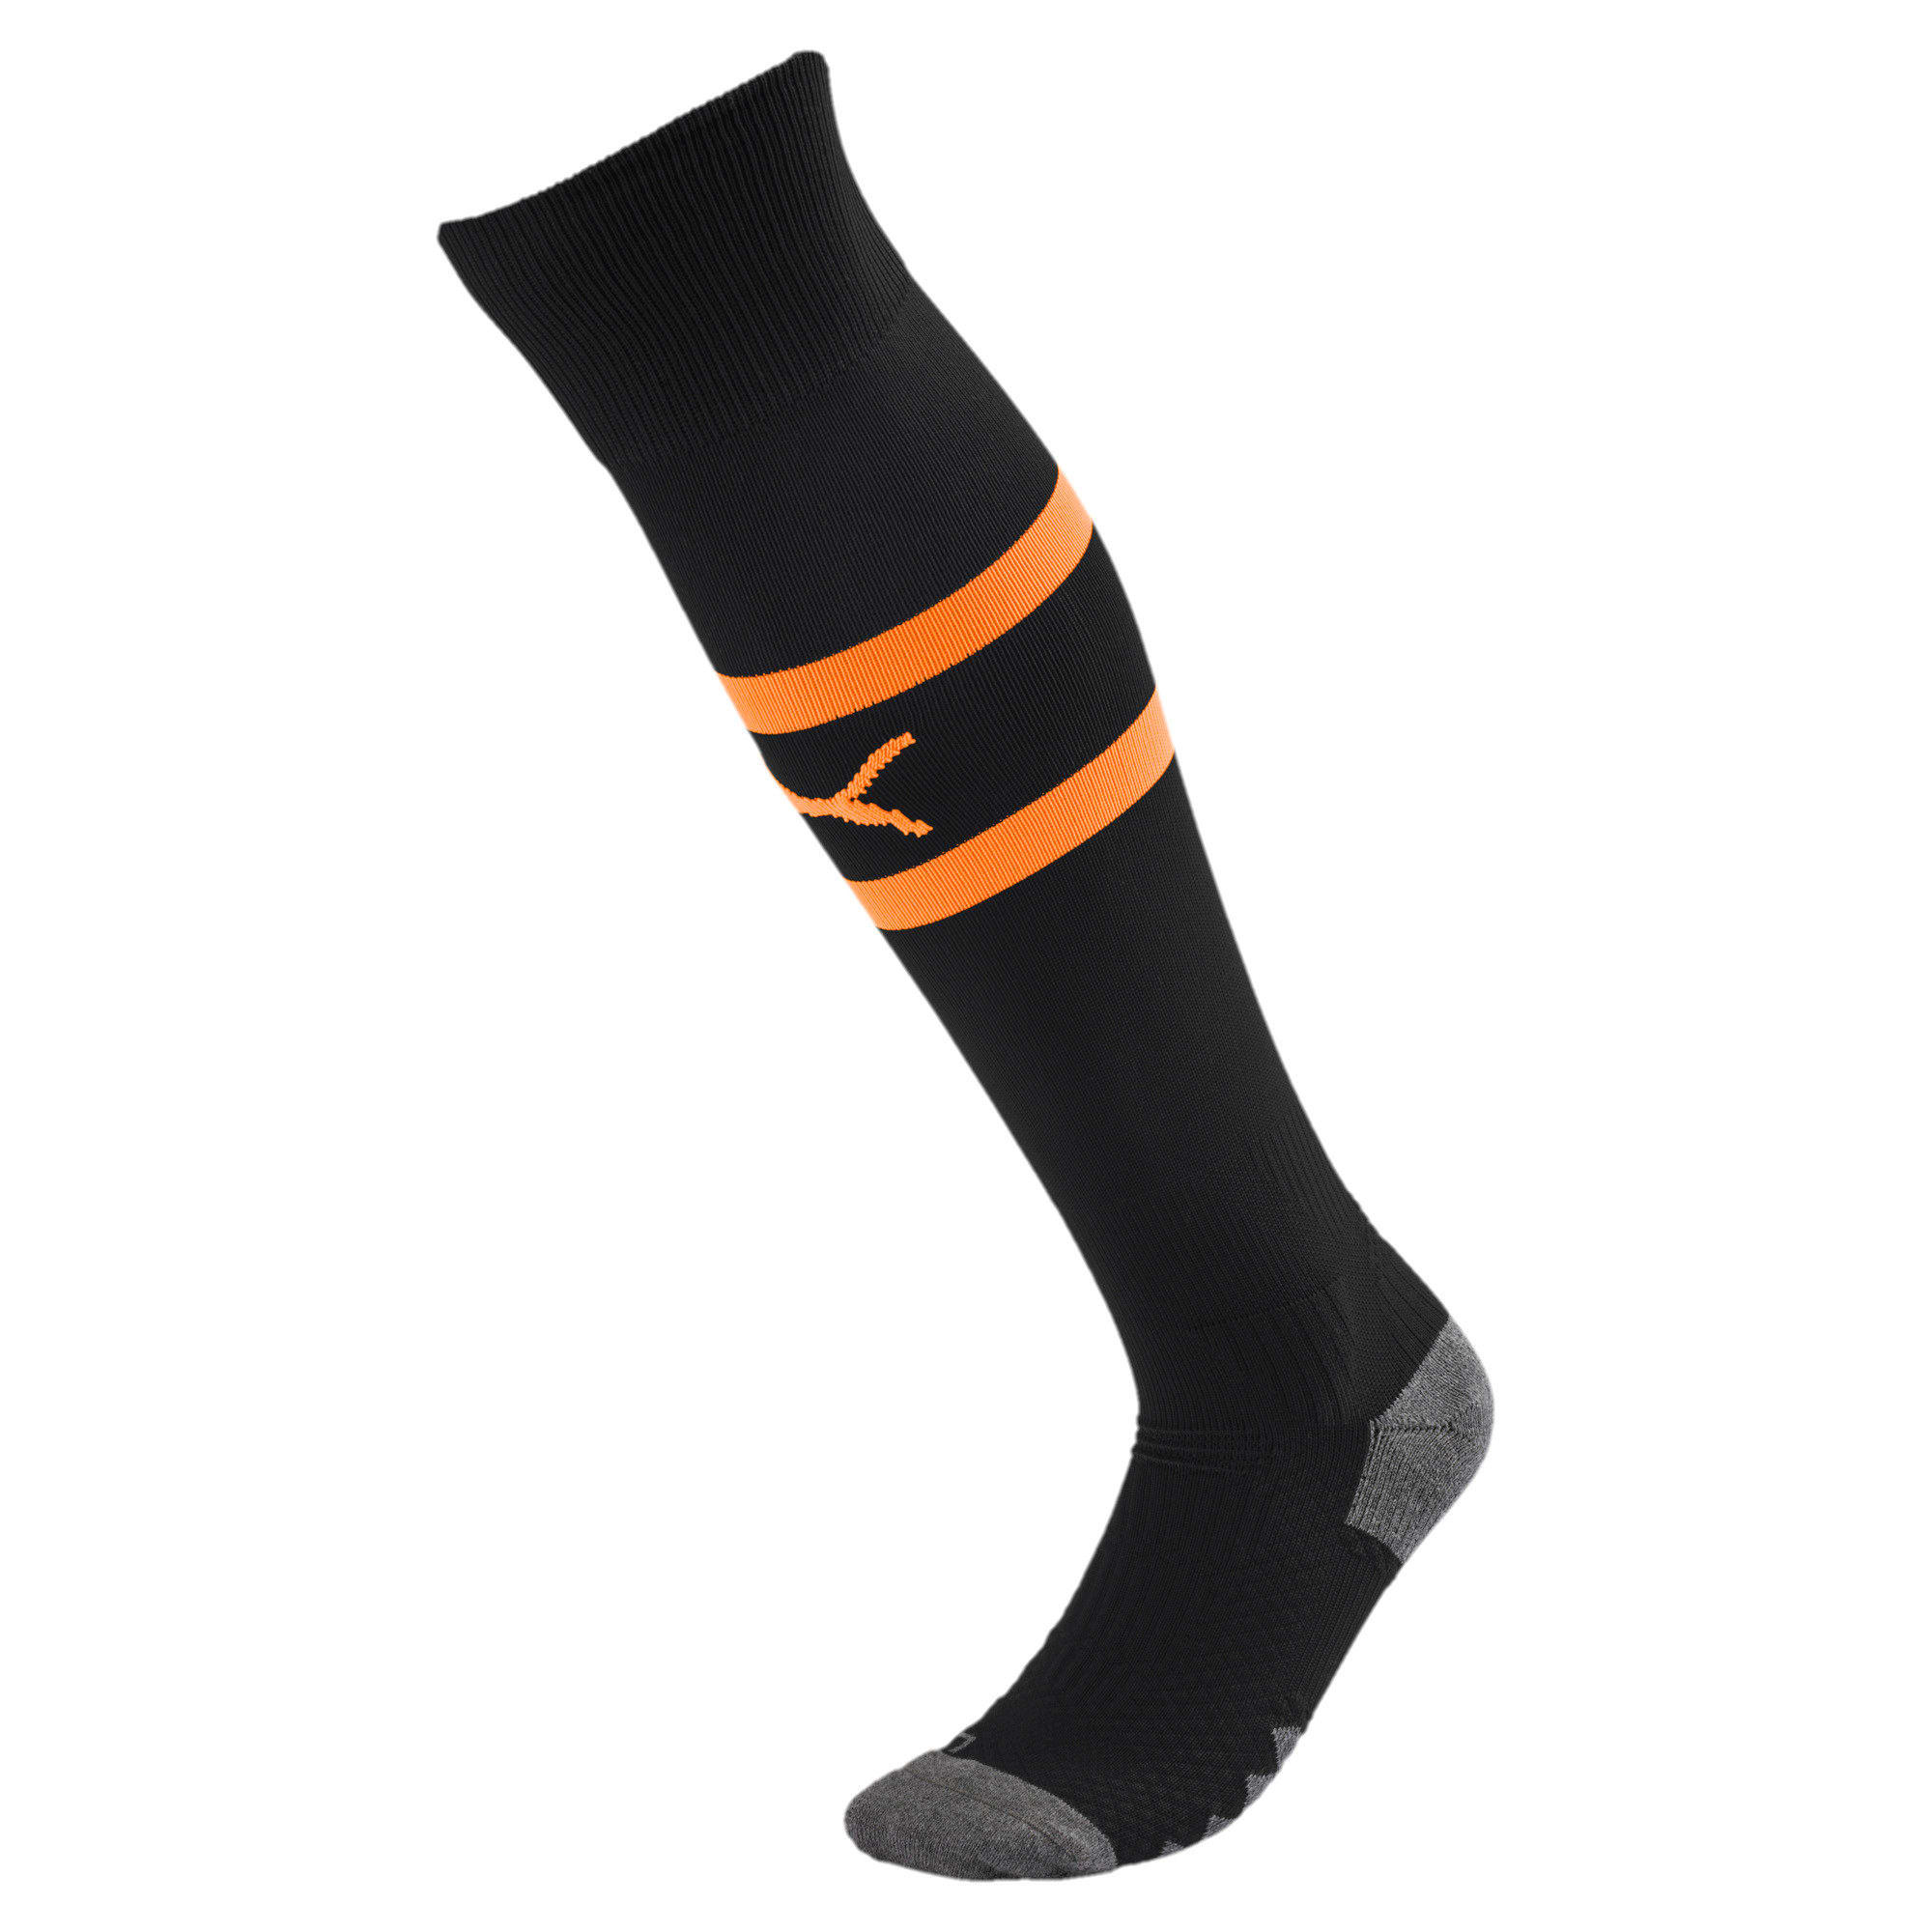 Thumbnail 1 of Valencia CF Men's Banded Socks, Puma Black-Vibrant Orange, medium